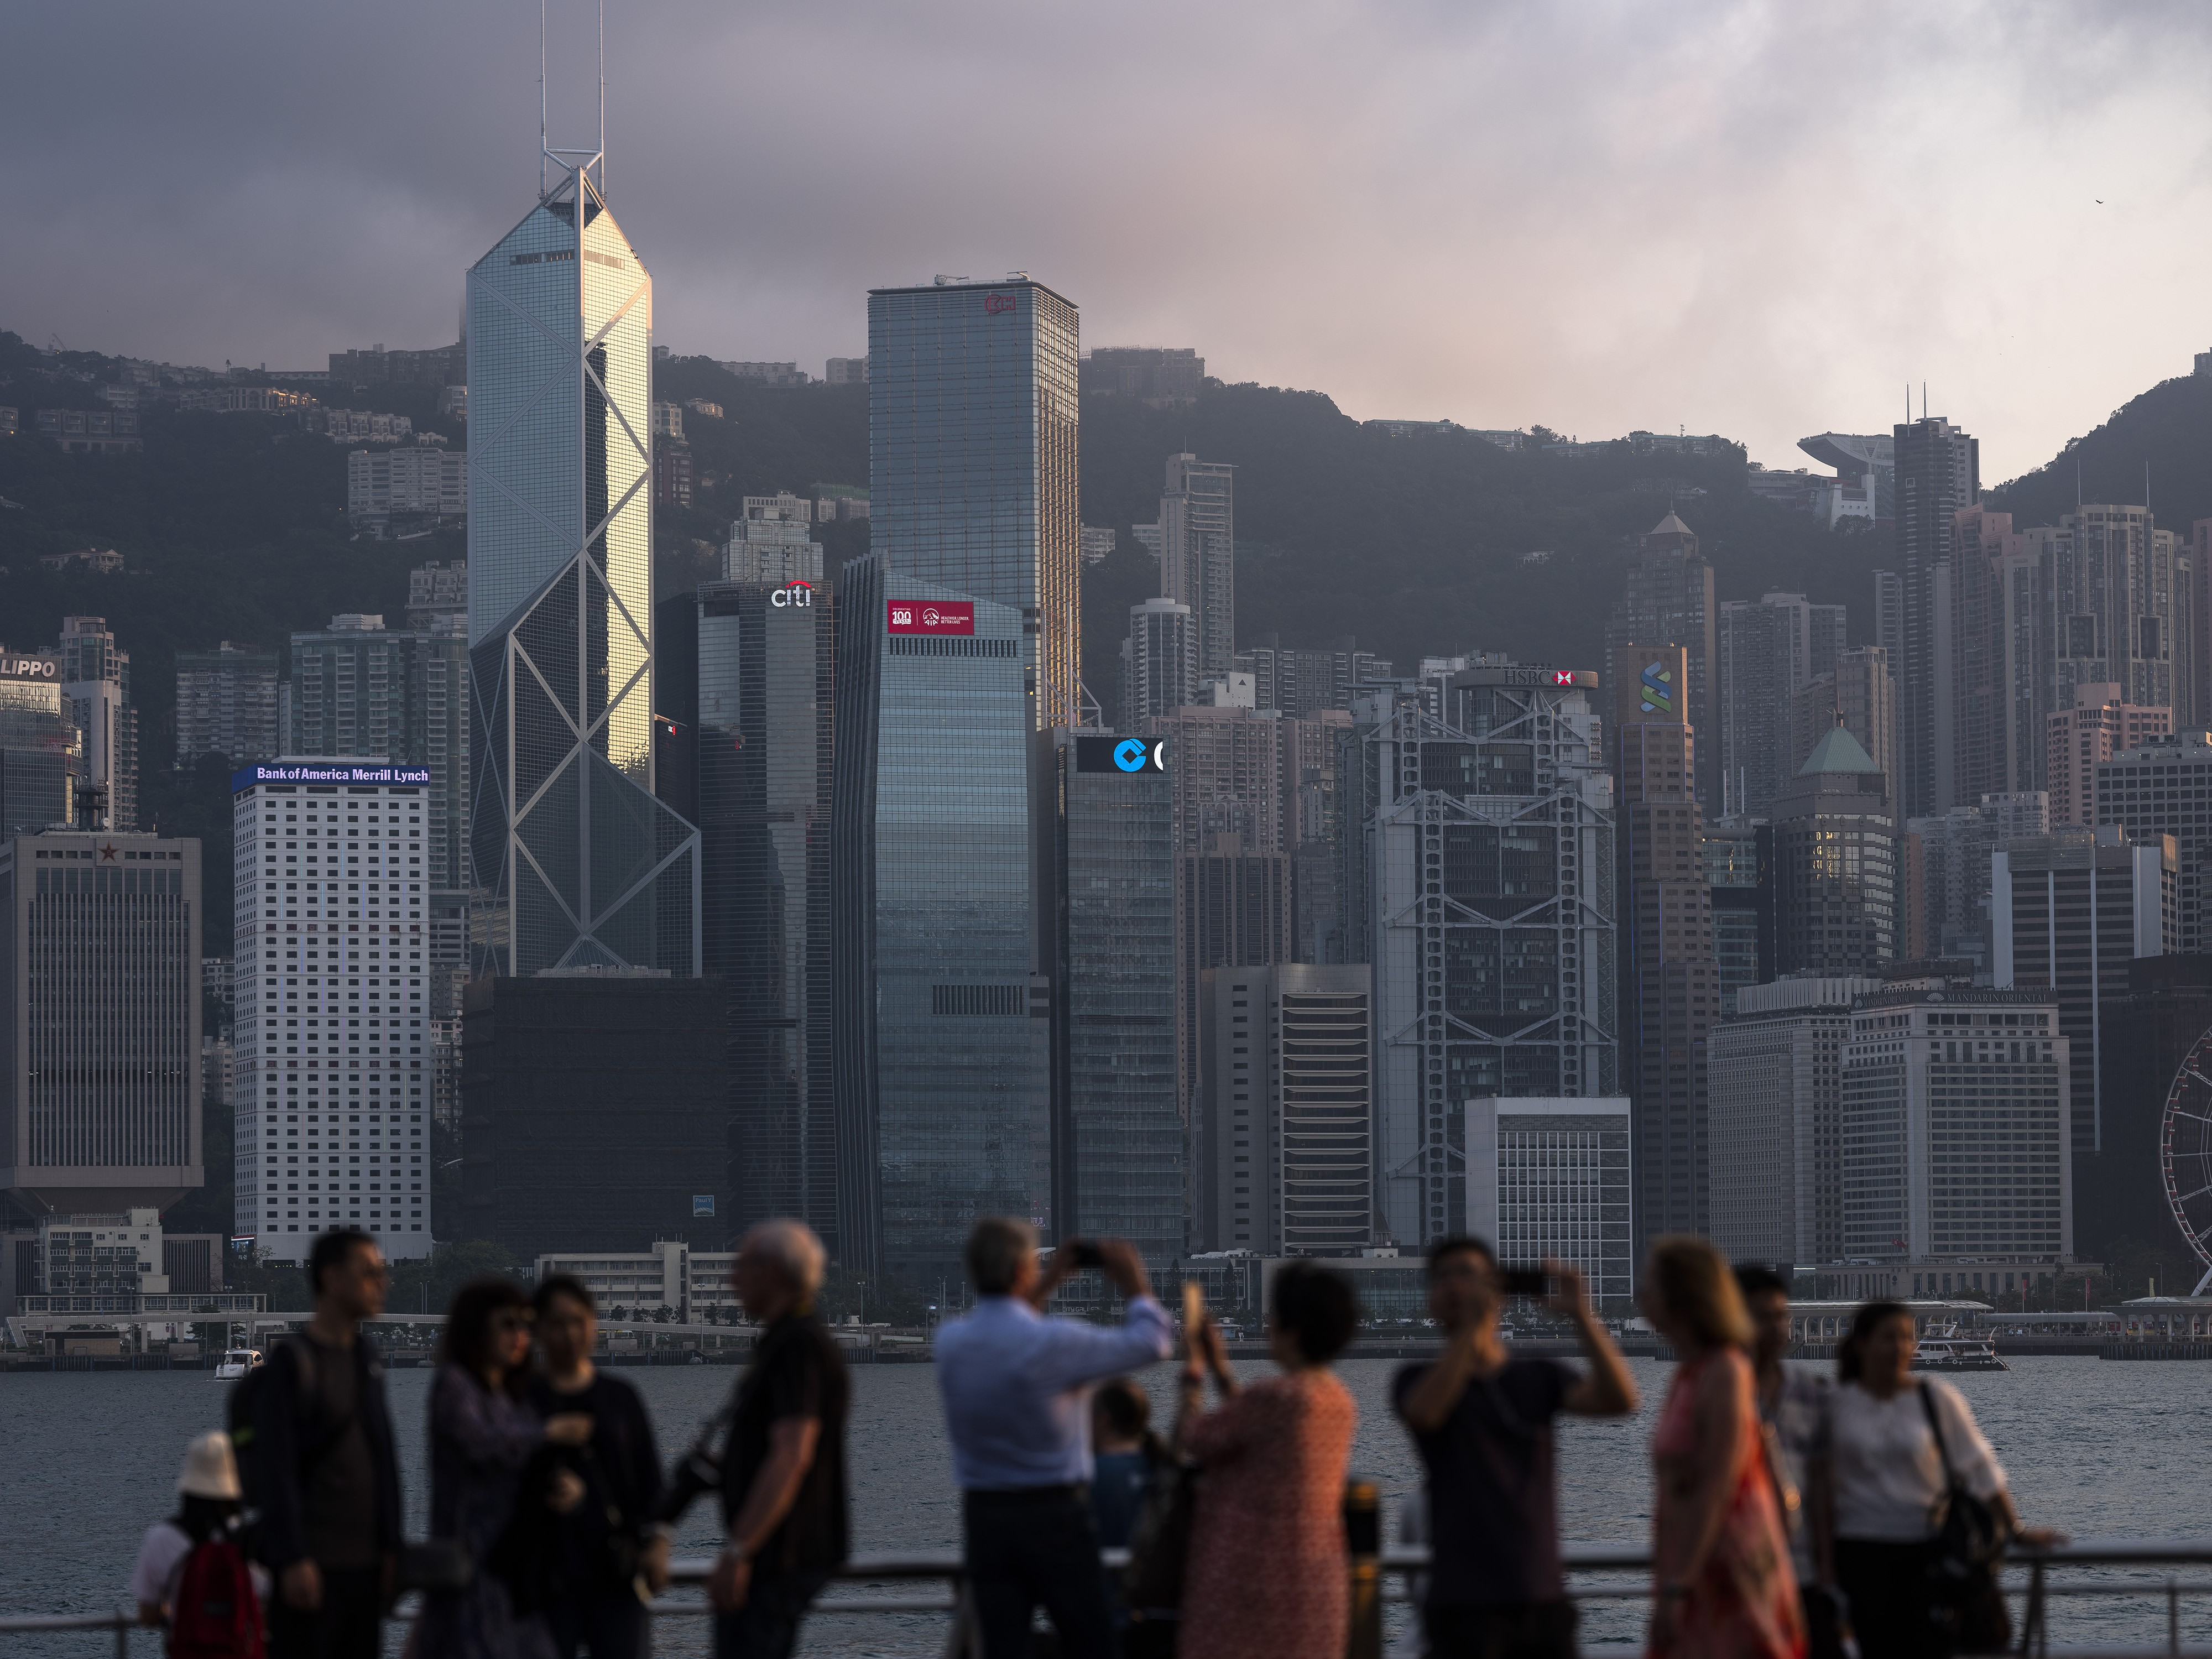 Hong Kong a ticking financial time bomb? A thrilling story